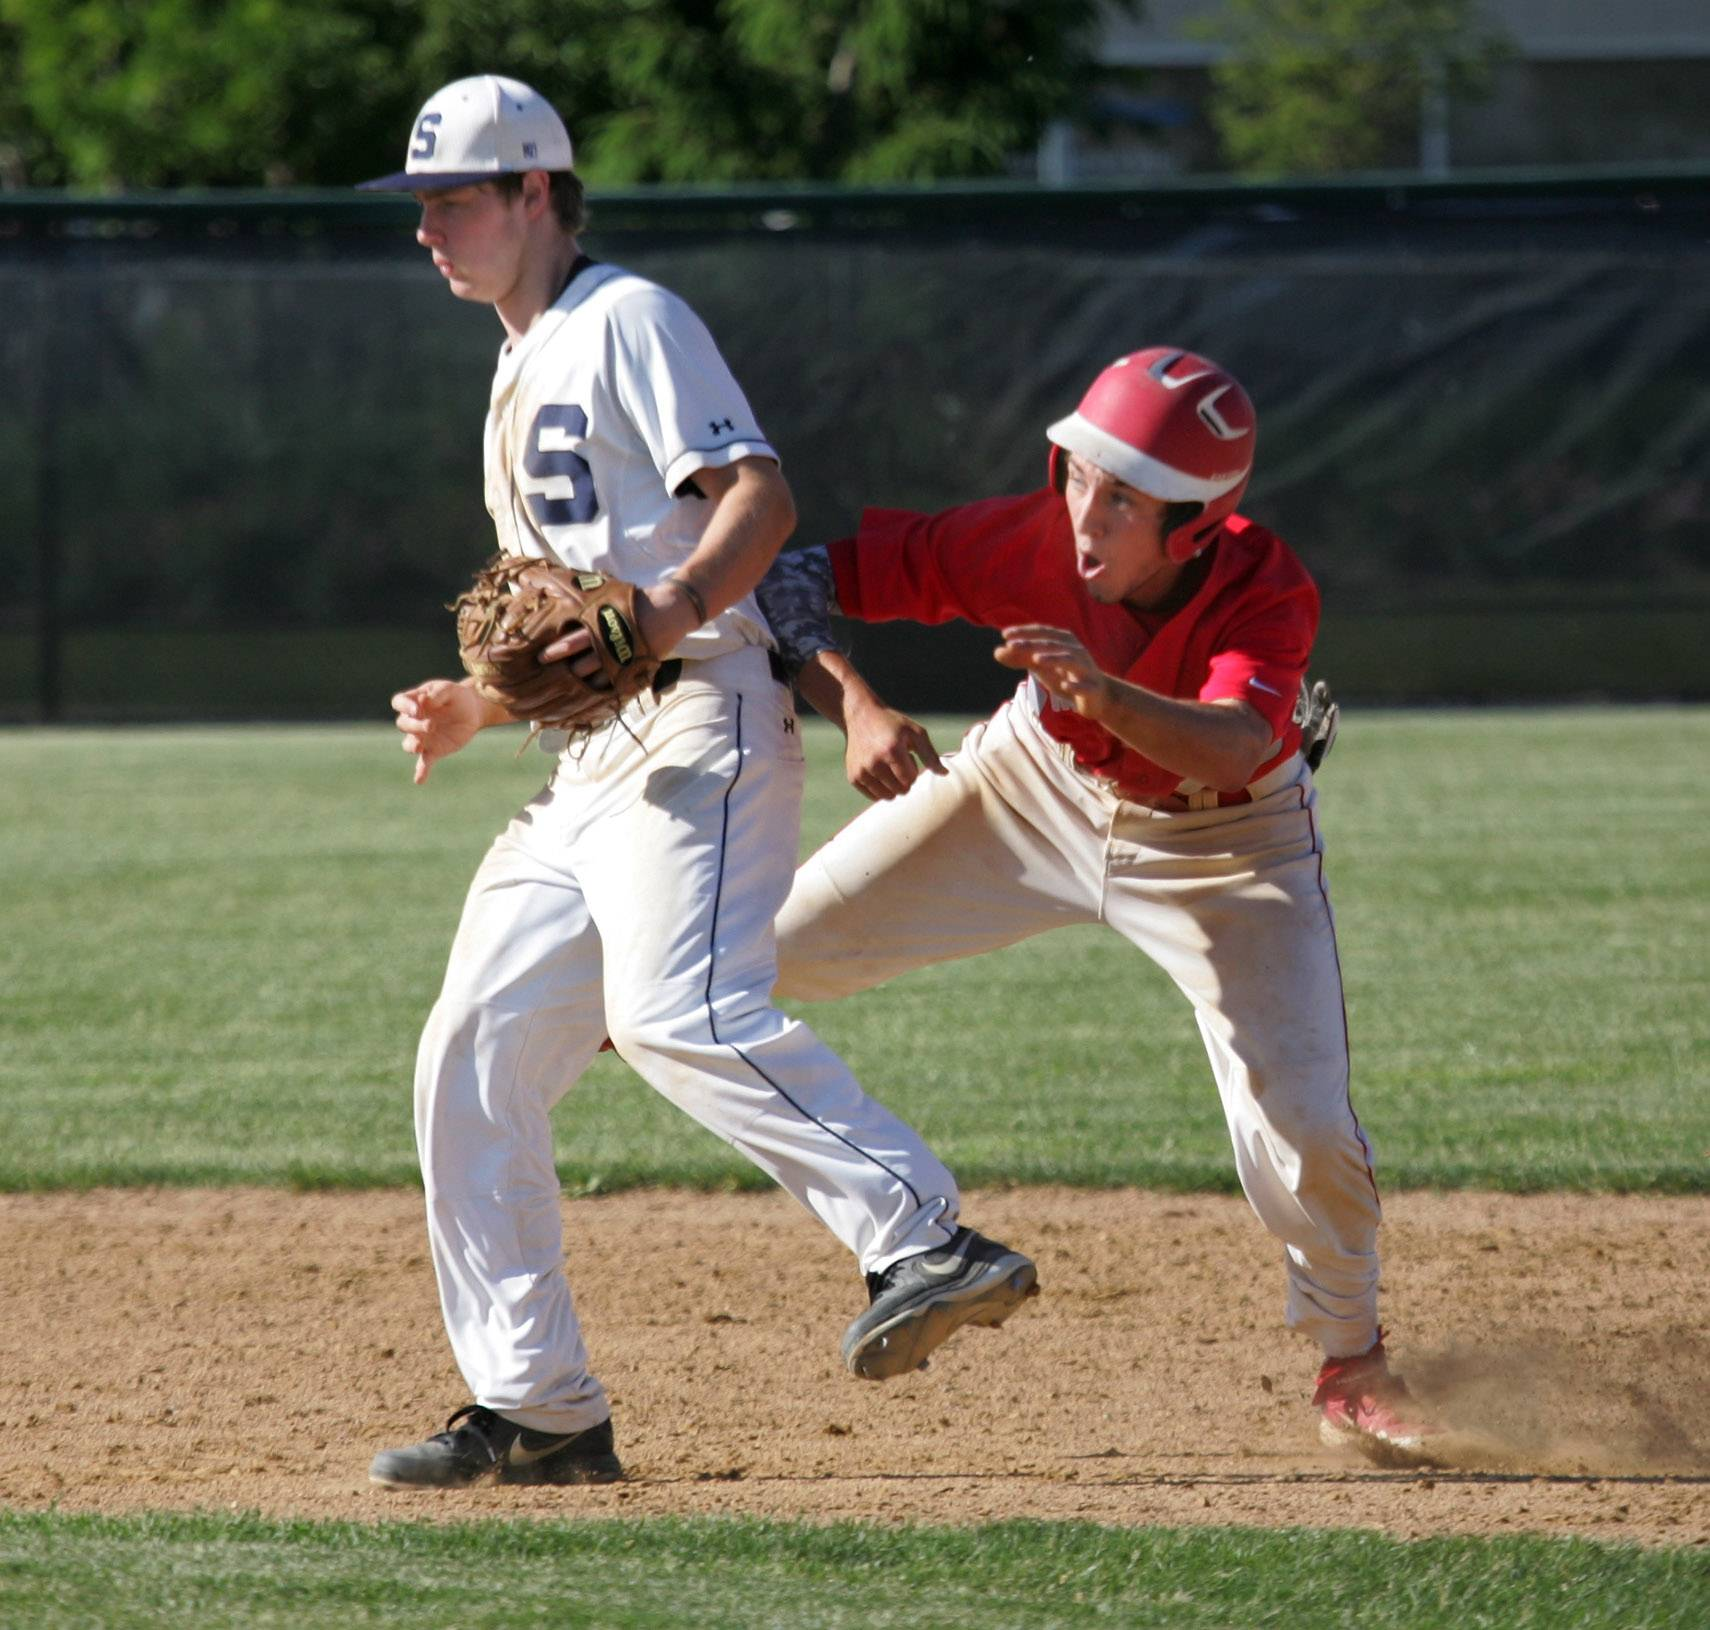 Mundelein runner Mike Metz is interfered with by Glenbrook South second baseman Jimmy Ruddy as he runs to third base during the Class 4A baseball sectional semifinal Thursday in Glenview.